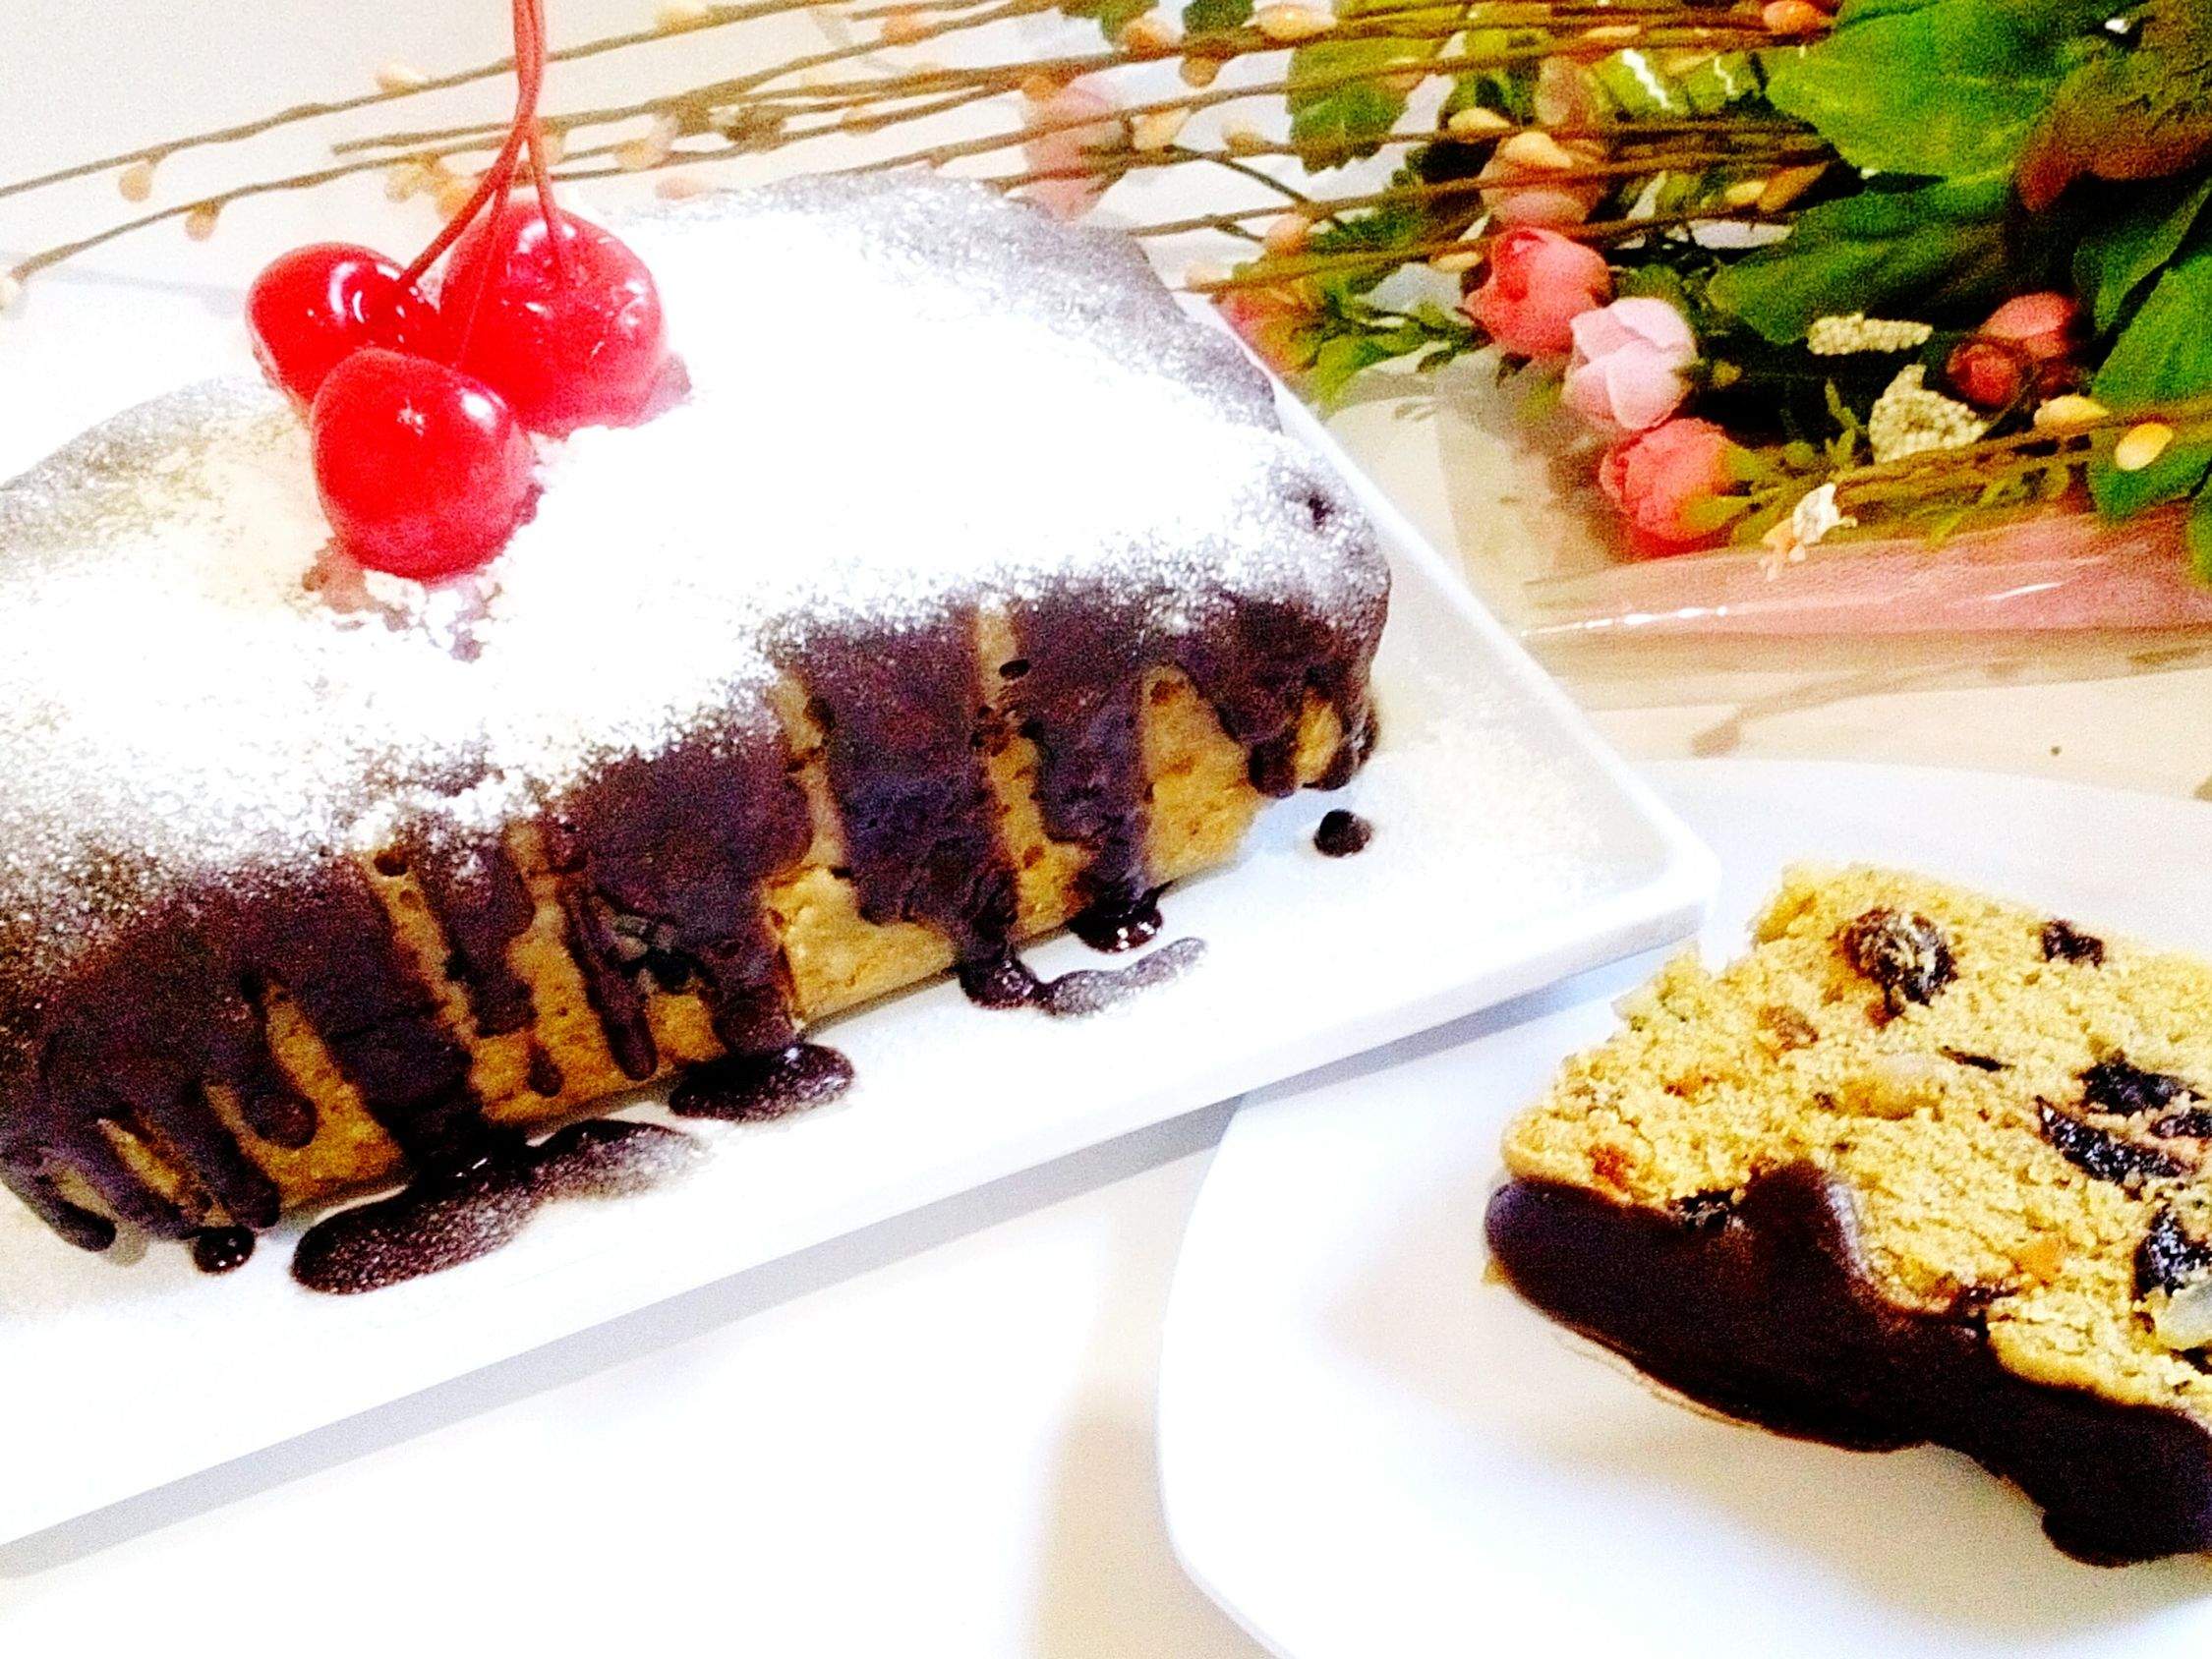 fruity spekuk rhum cake with dark chocholate rhum and soft sugar My Yummy Cooking Cookingbyme Cakemadebyme Yummycake Cookingbymyself The Foodie - 2015 EyeEm Awards Myowncooking Cooking At Home Mycooking